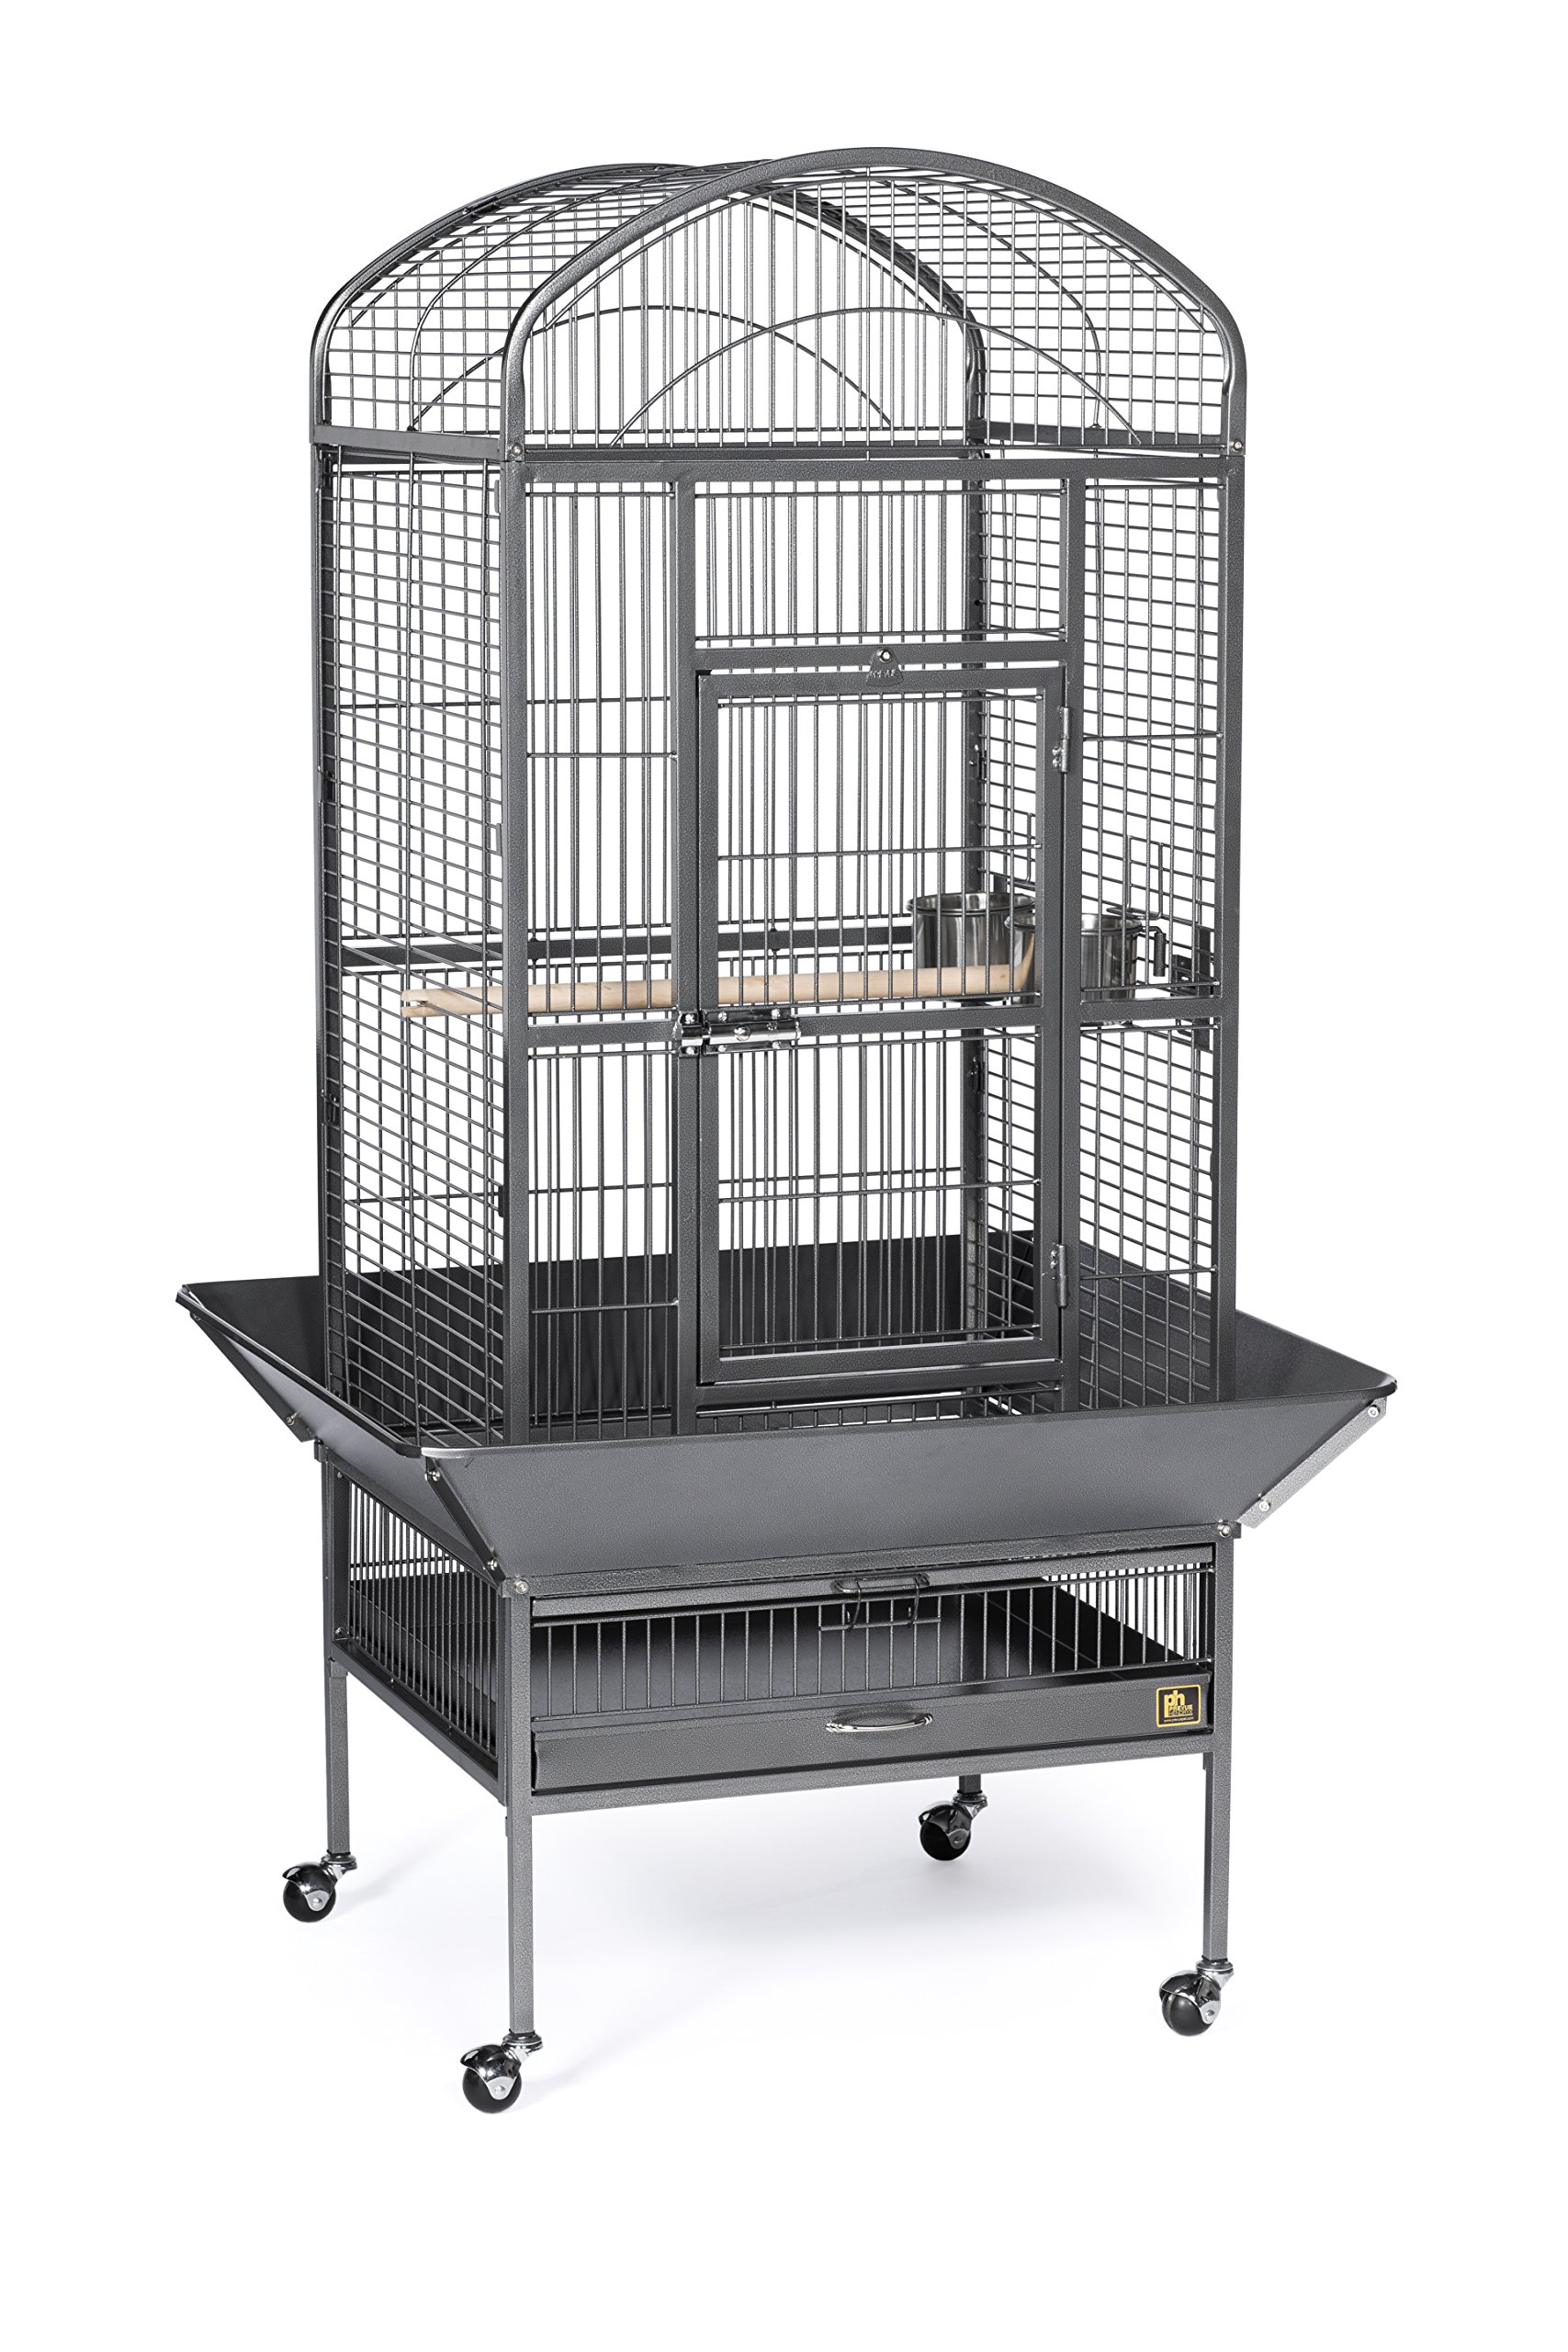 Prevue Pet Products 34521 Dometop Bird Cage, Large, Black Hammertone by Prevue Pet Products